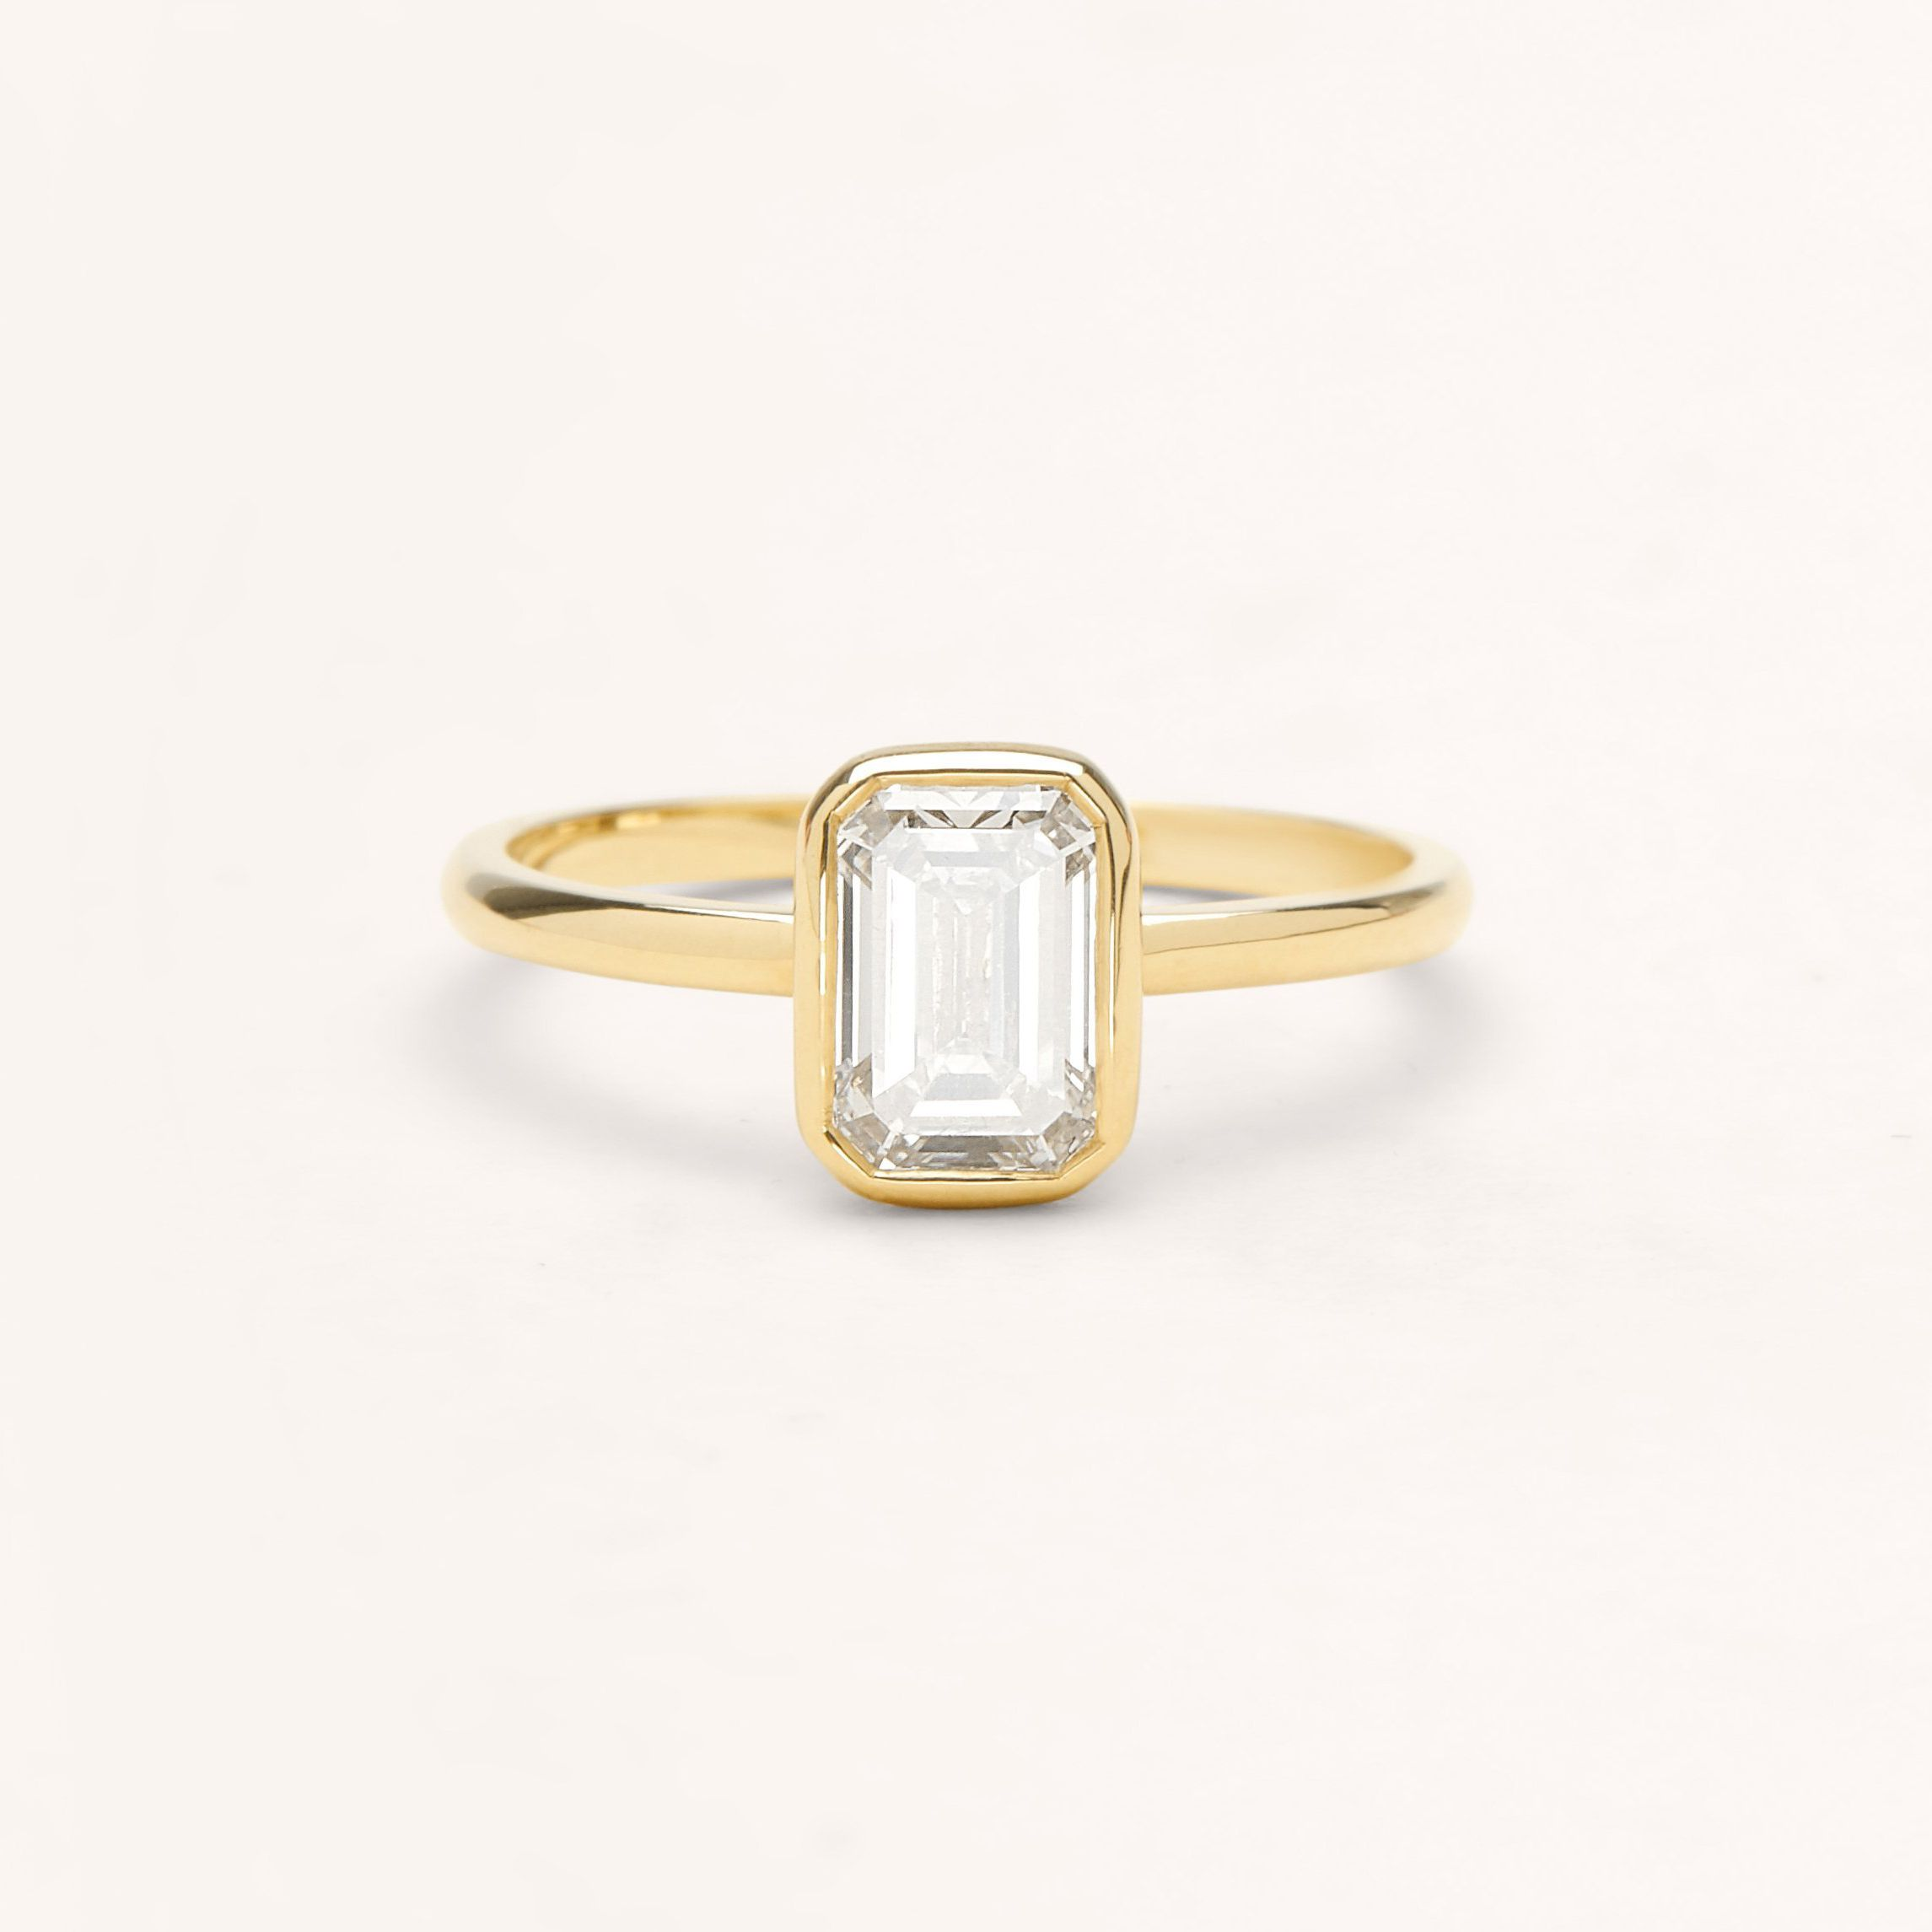 Bezel emerald cut diamond engagement ring with yellow gold band on a white background.